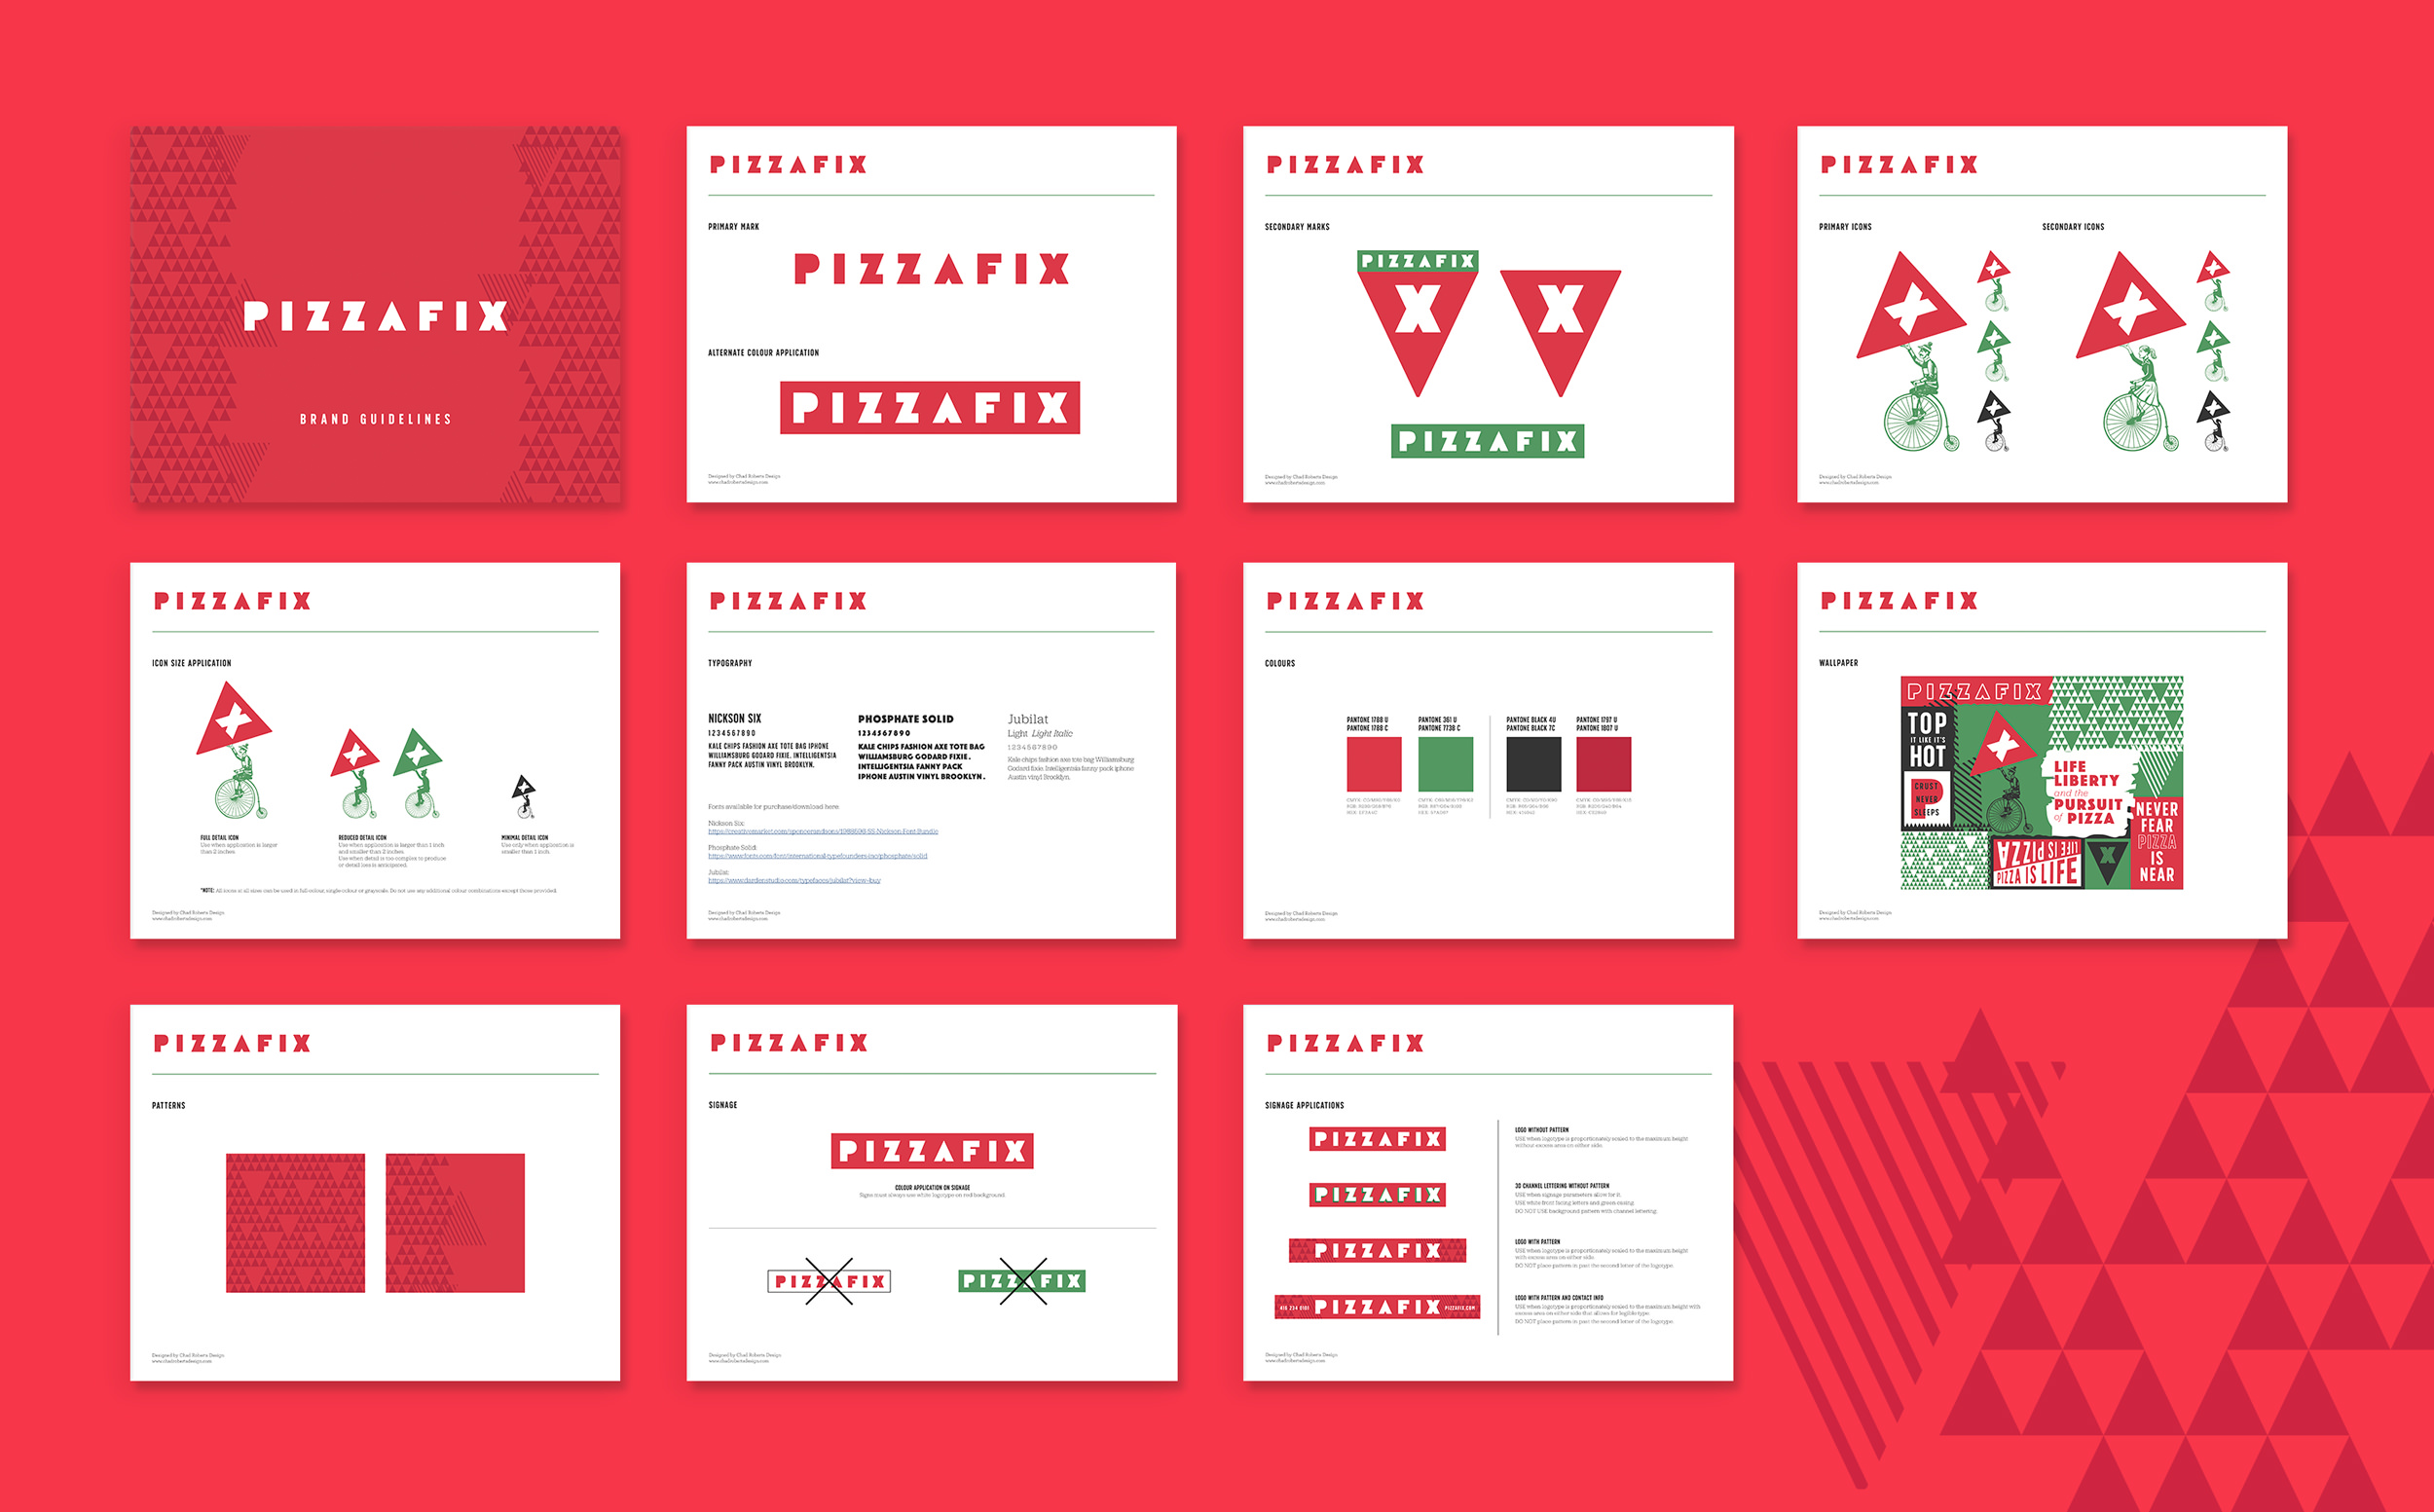 Chad Roberts Design Ltd. Pizzafix Styleguide Brand Guidelines Brand Identity